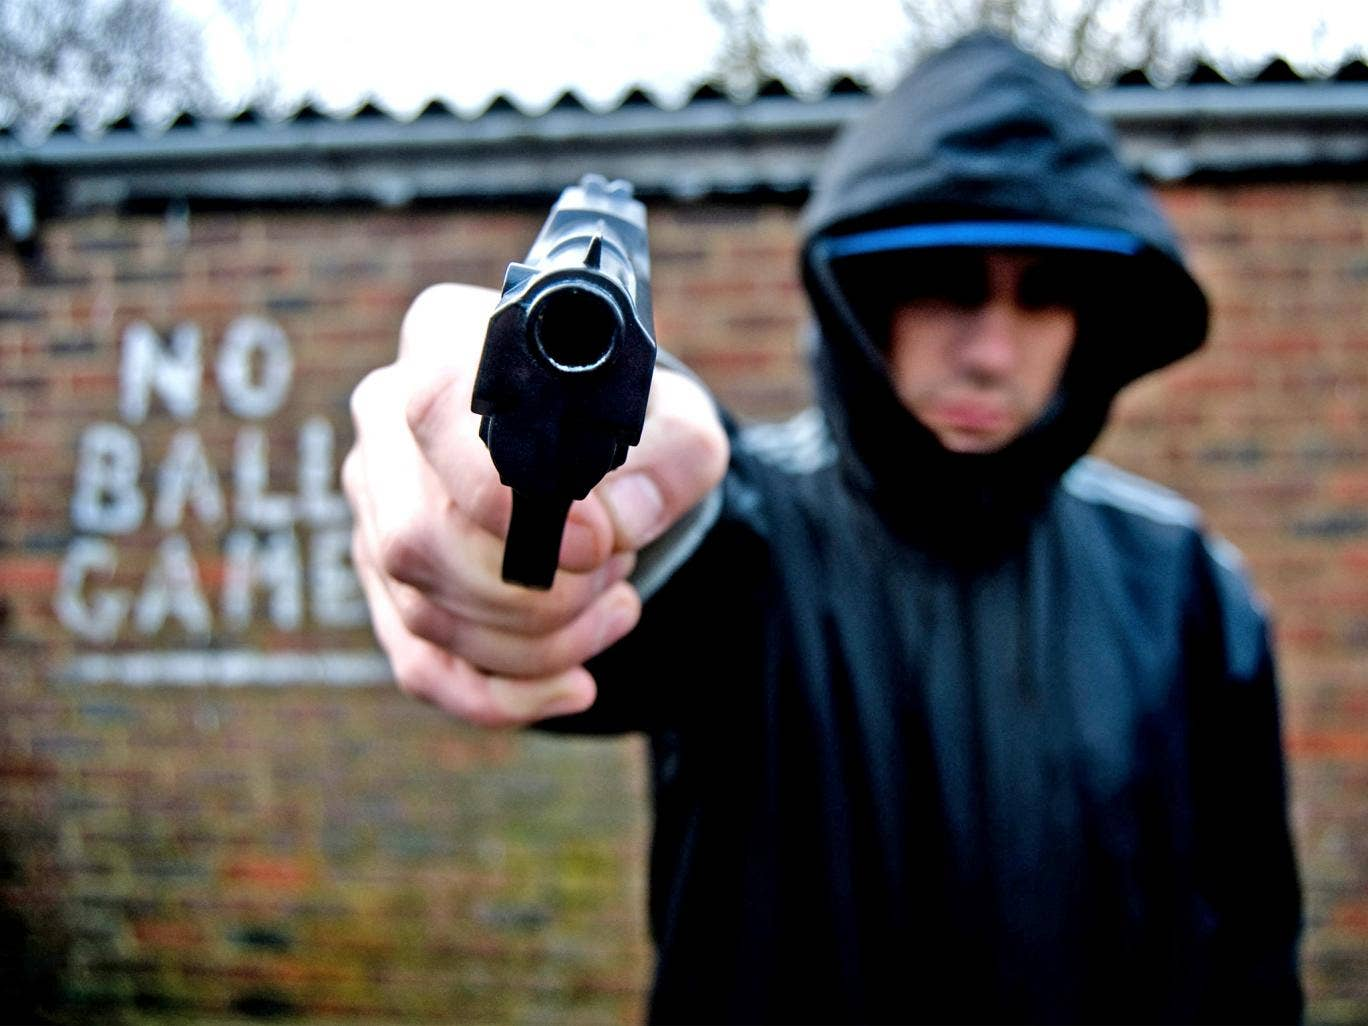 Police in England and Wales recorded 5,911 firearms offences in 2011/12